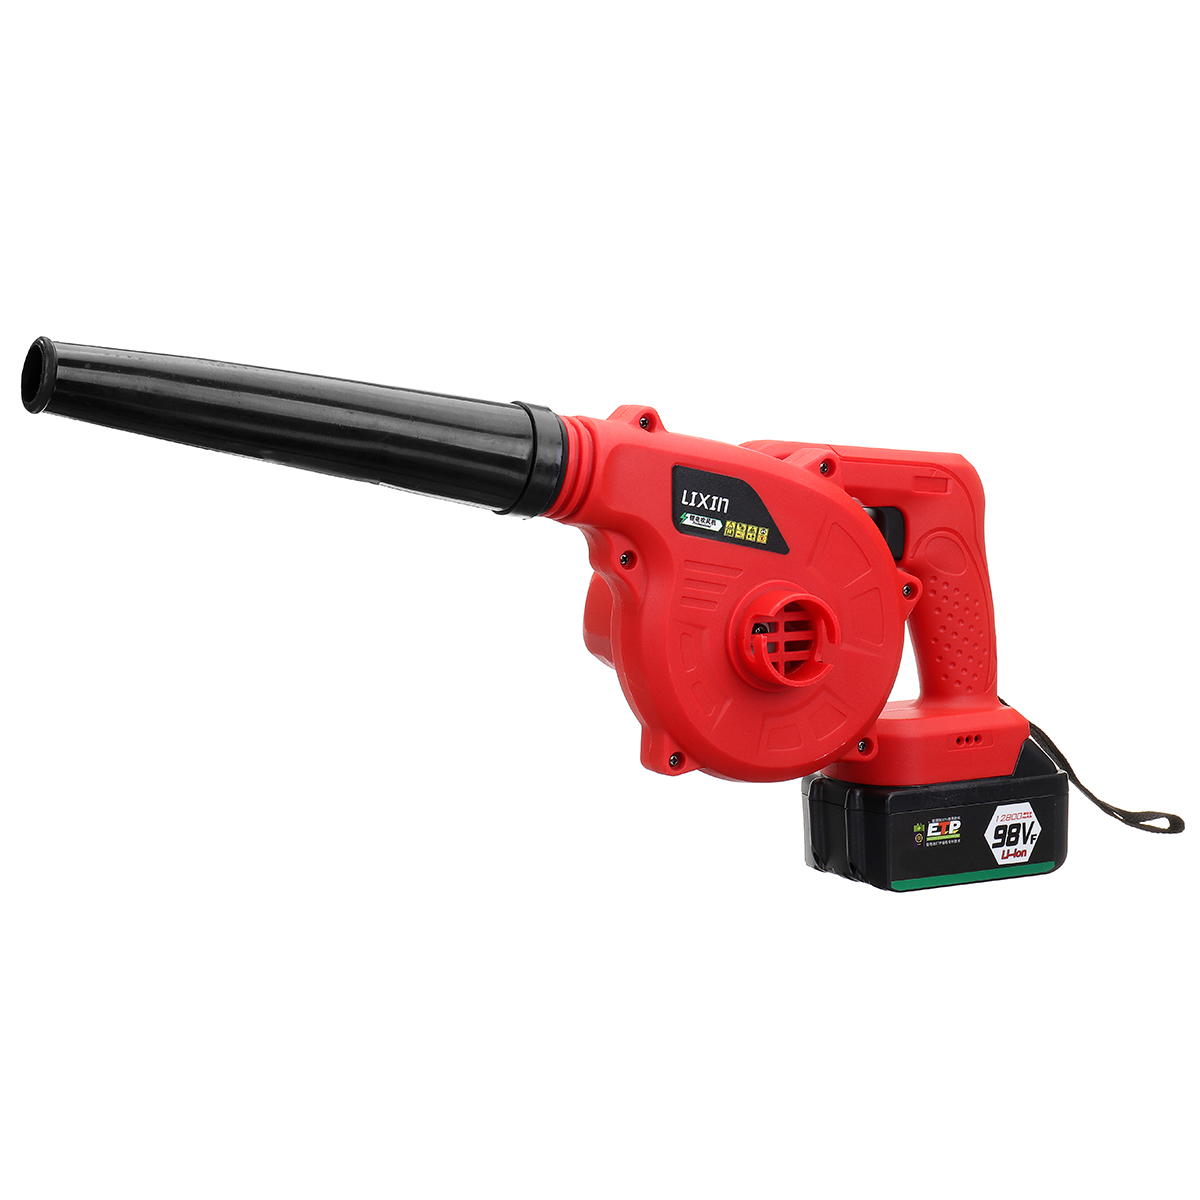 220V 12800mAh Lithium Battery Multifunctional Air Blower Dual-use Suction Blower Electric Dust Removal Air Blower Cleaner